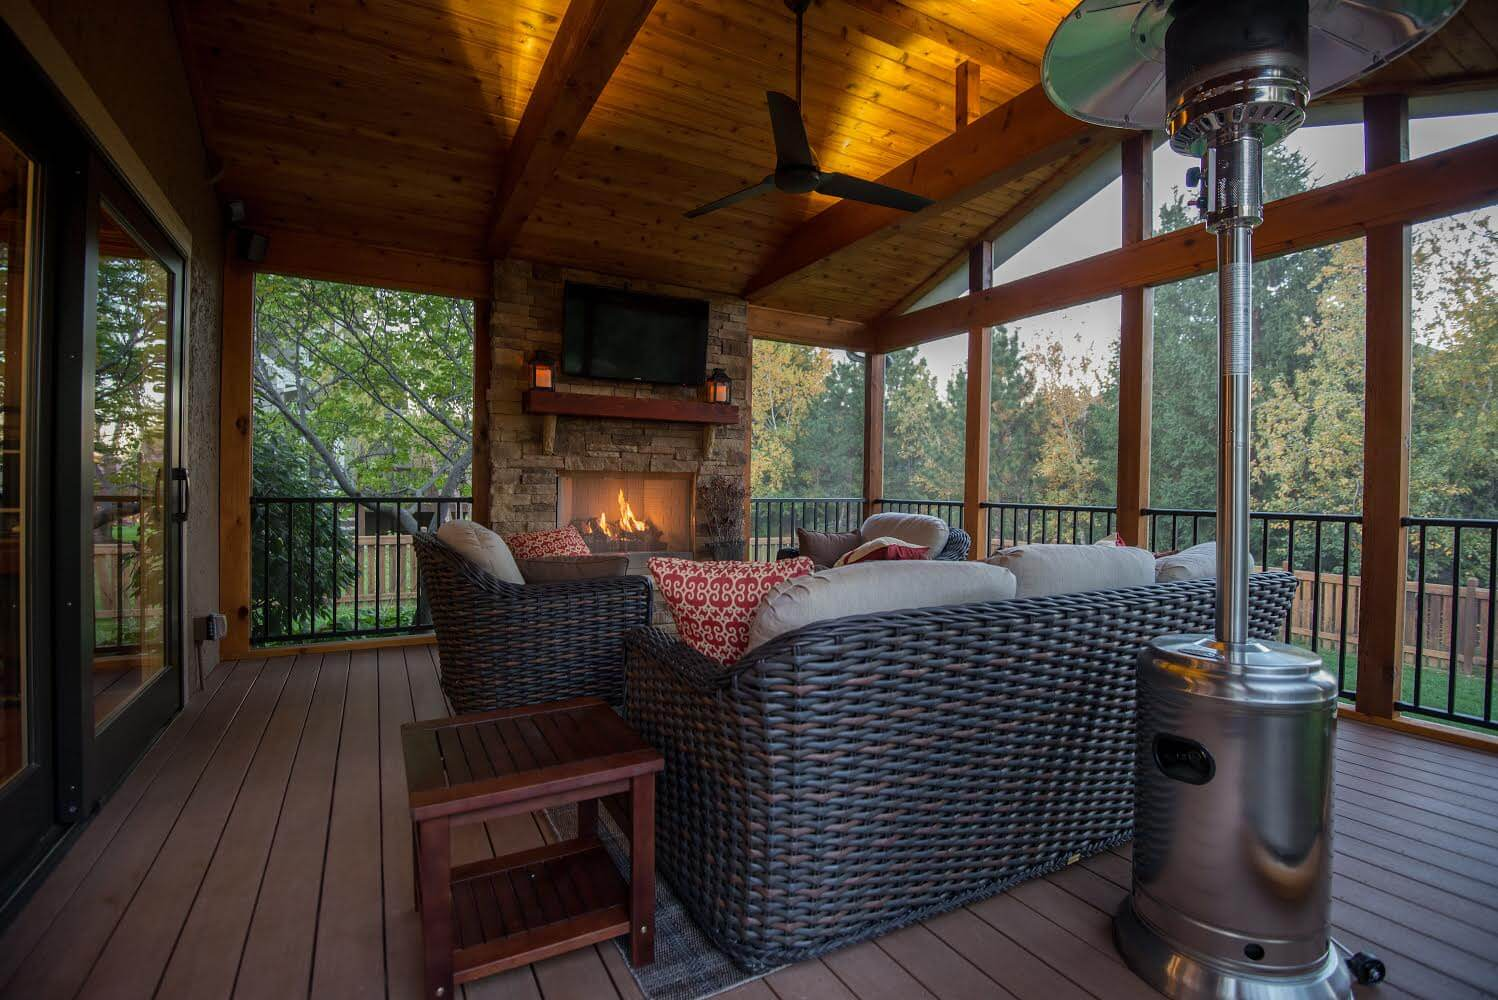 Cozy screened room with outdoor fireplace